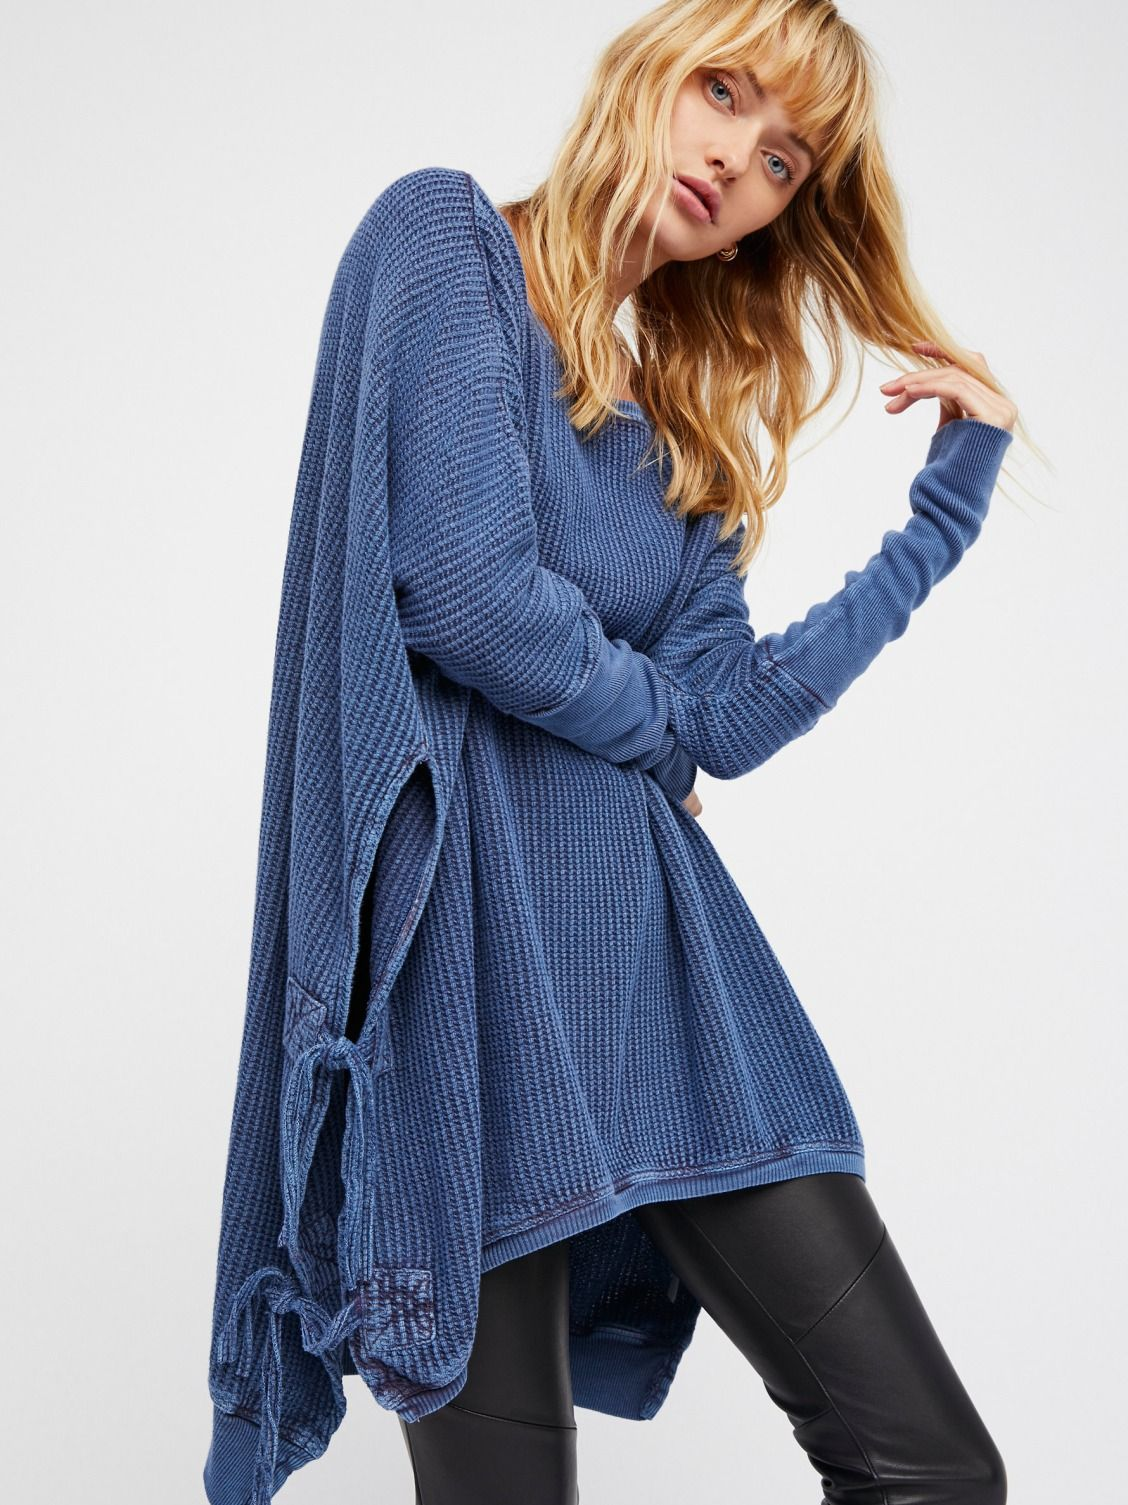 FP One Interlaken Tunic Clothes, Fashion, Clothes for women